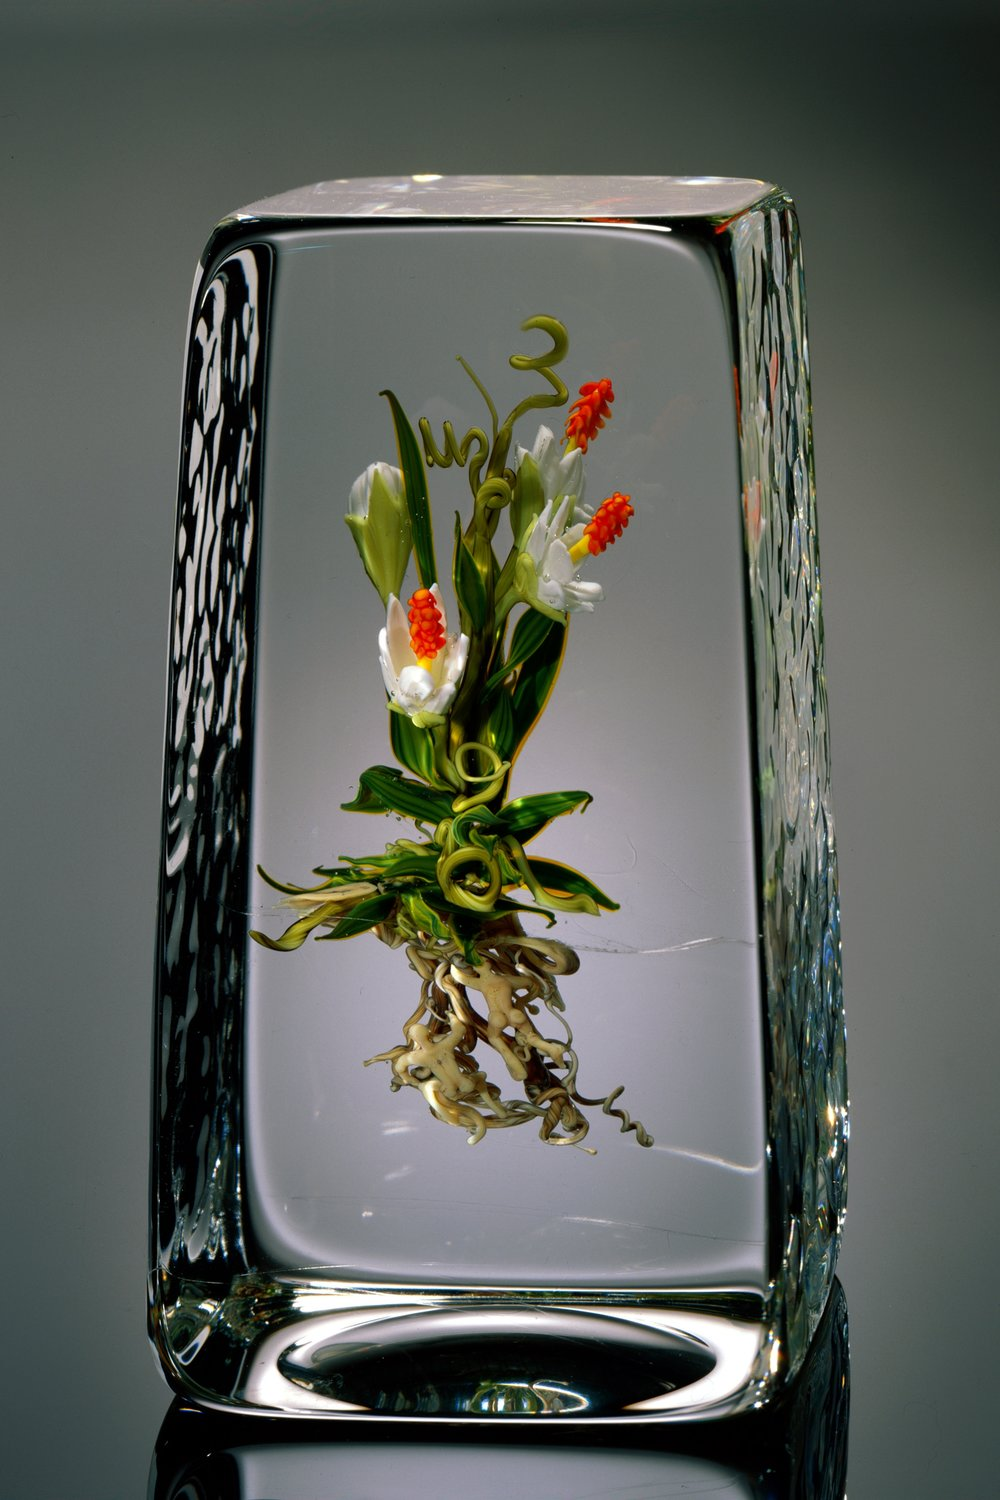 2005; Botanical with Red Stamins; H. 5.5 inches